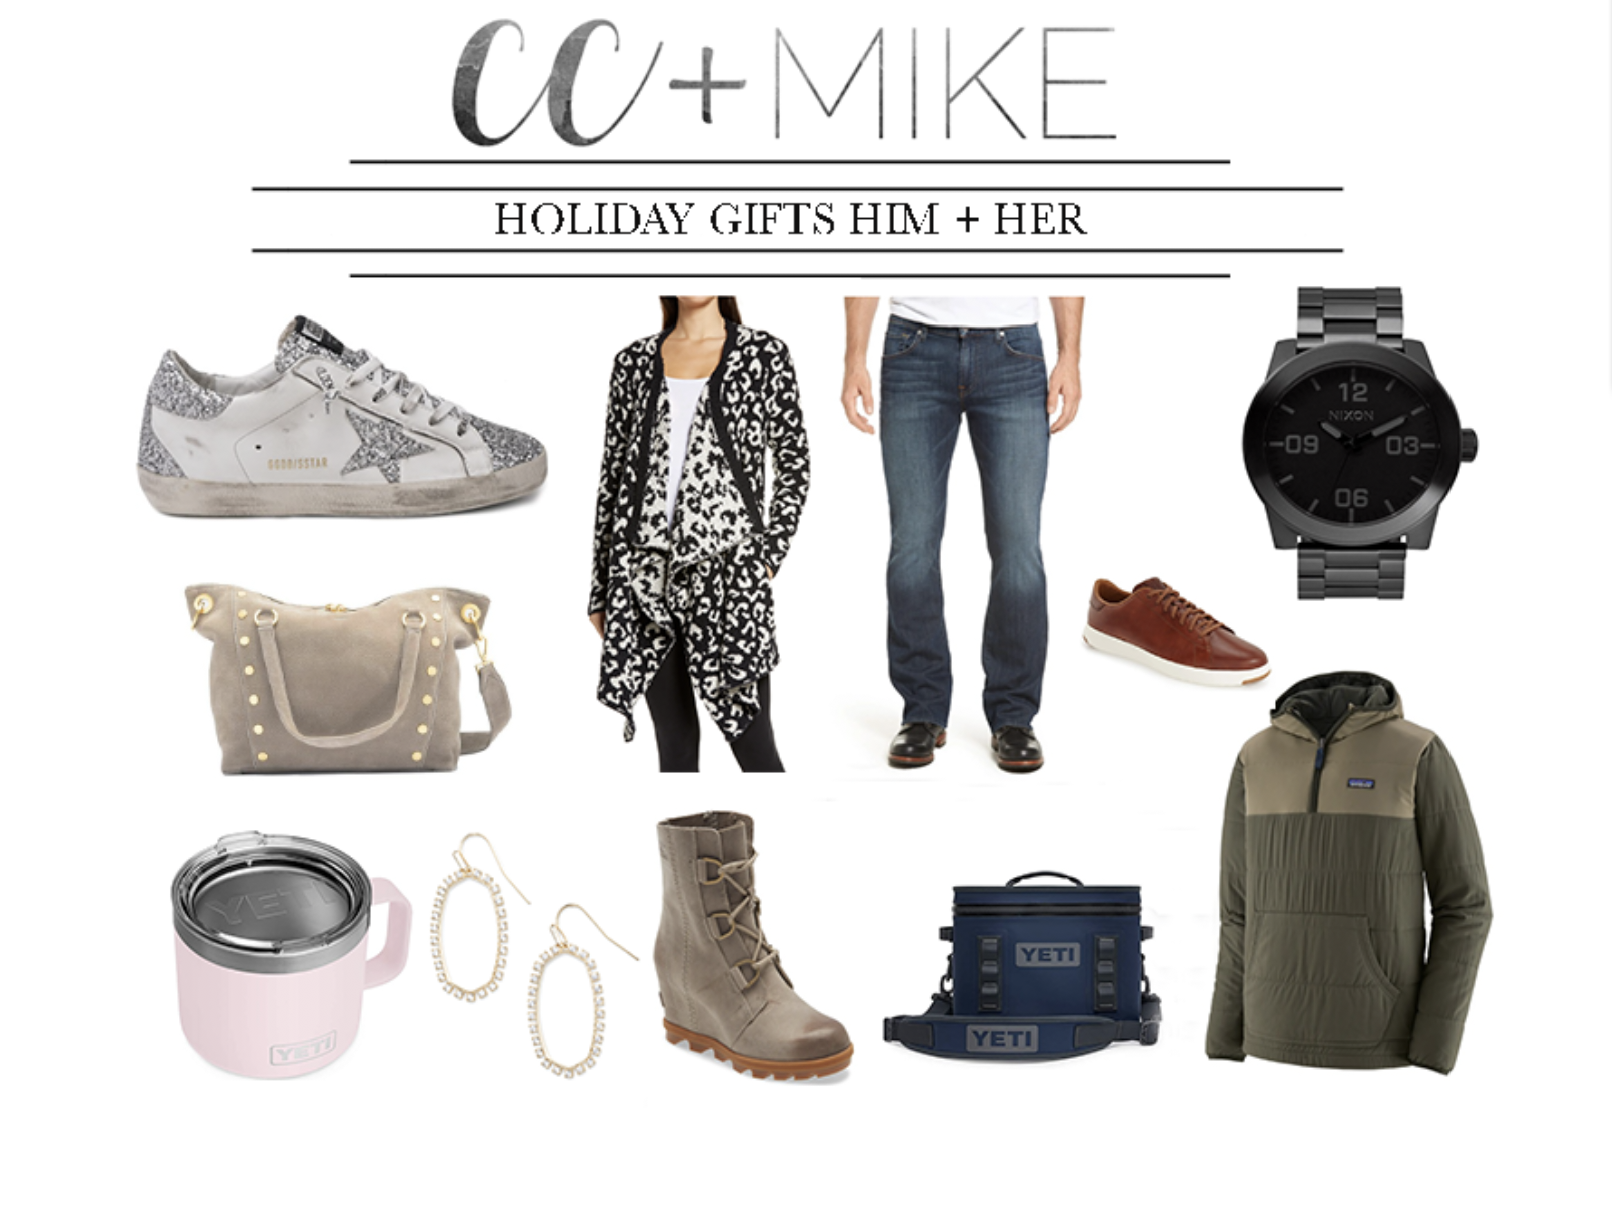 2020 HOLIDAY GIFT GUIDES FOR HIM & HER